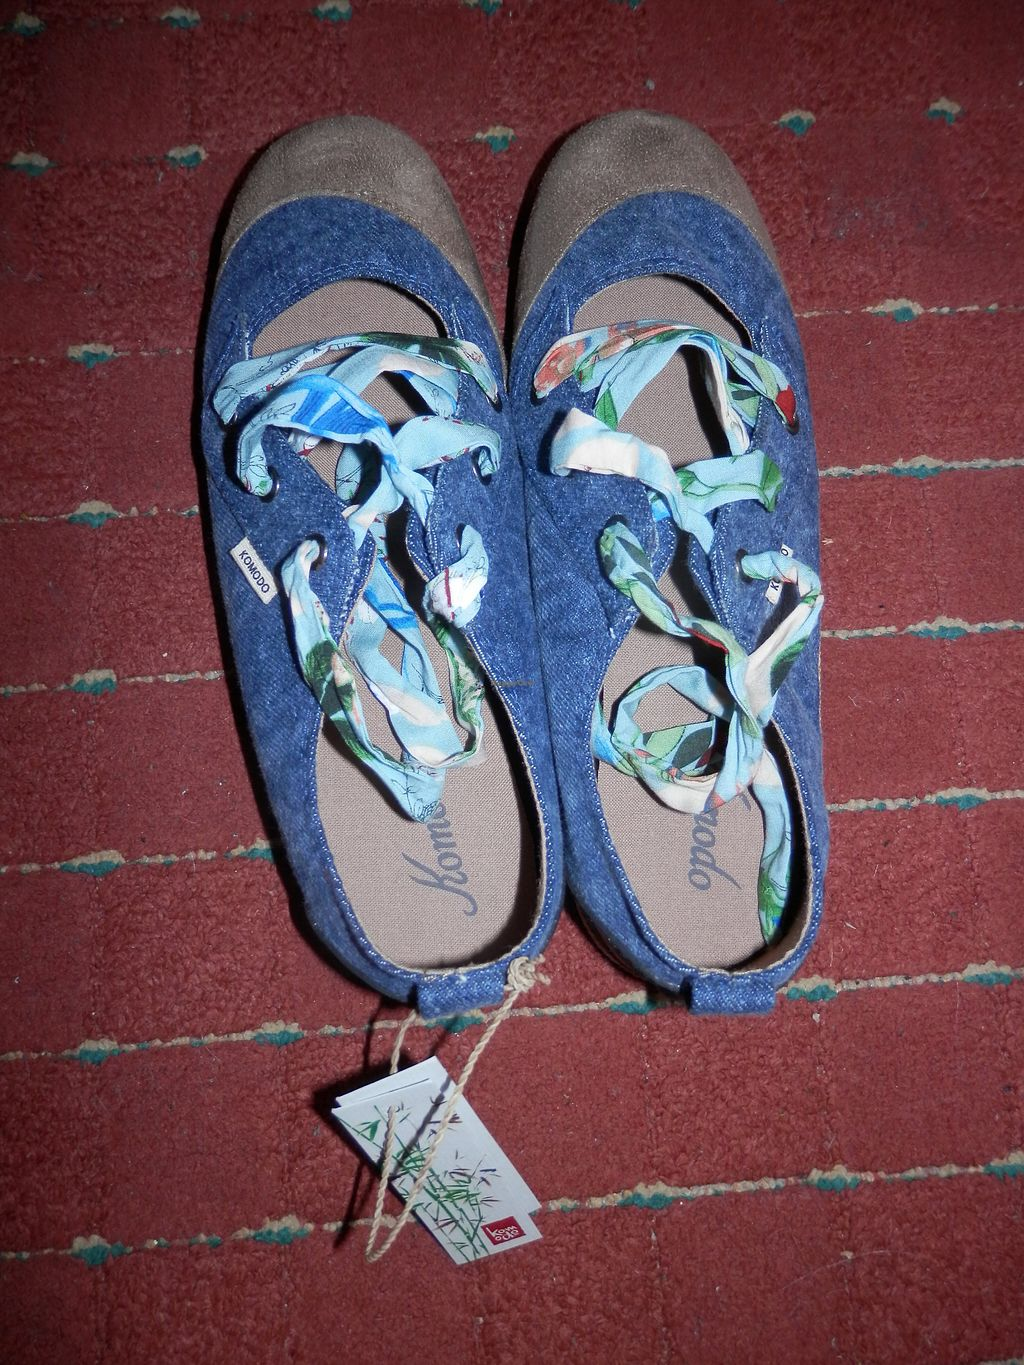 """Photo of Vegetarian Shoes  by <a href=""""/members/profile/Vegan_Belle"""">Vegan_Belle</a> <br/>Bali Ballet Shoes purchased from Vegetarian Shoes <br/> October 24, 2017  - <a href='/contact/abuse/image/30114/318347'>Report</a>"""